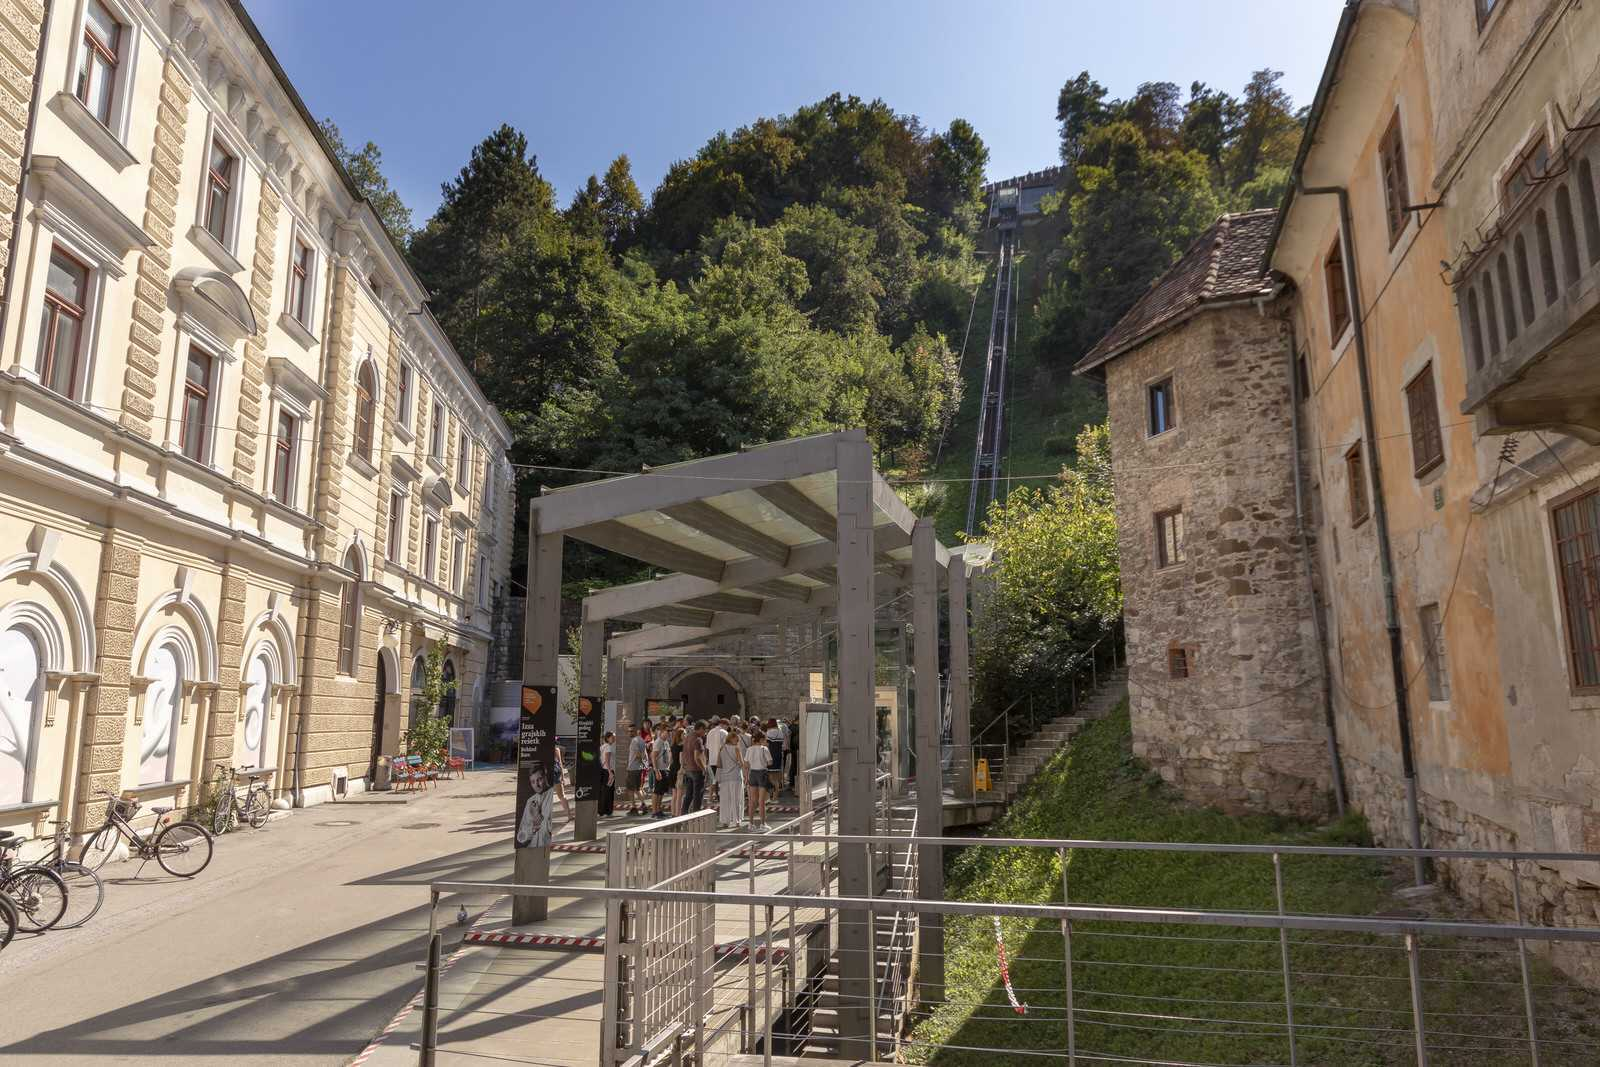 The funicular offers a spectacular view of the city while ascending the castle hill.